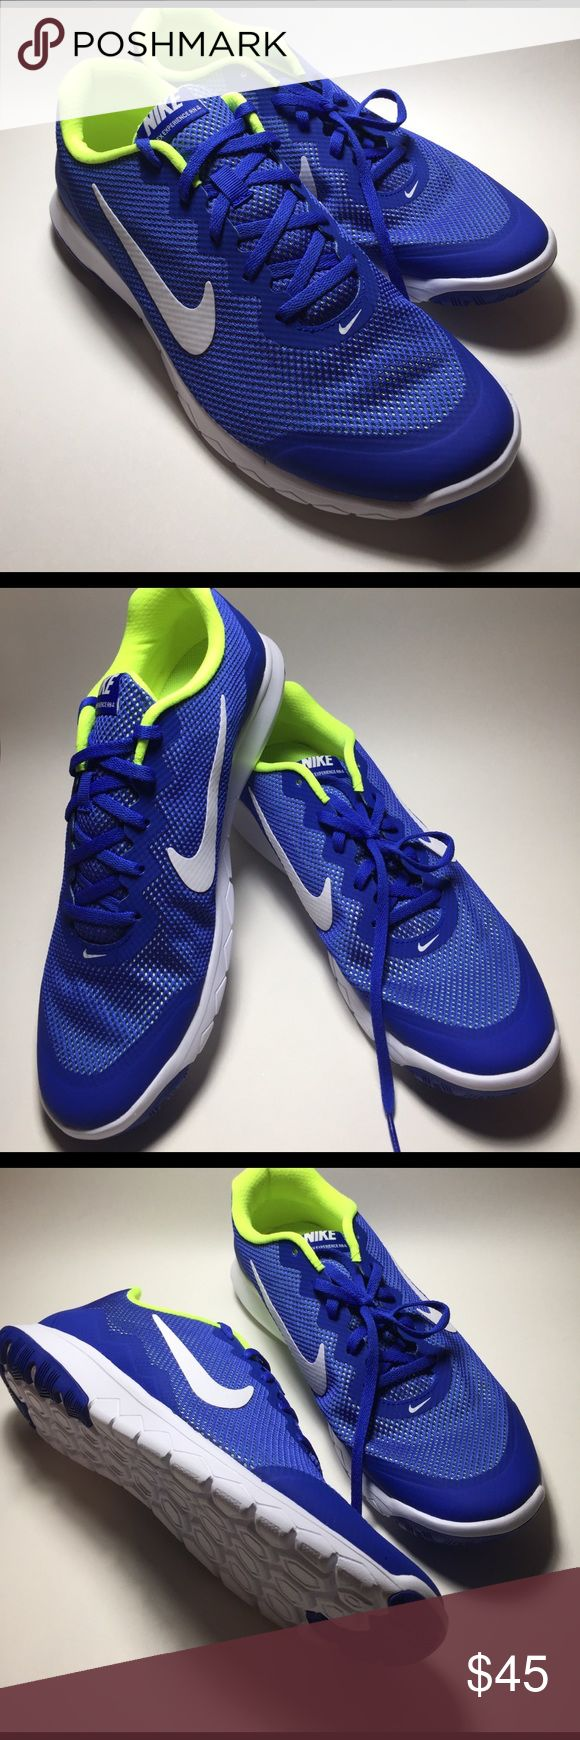 New in box men's size 10 Nike flex experience Rn4 New in box men's size 10 Nike flex experience Rn4 Nike Shoes Athletic Shoes